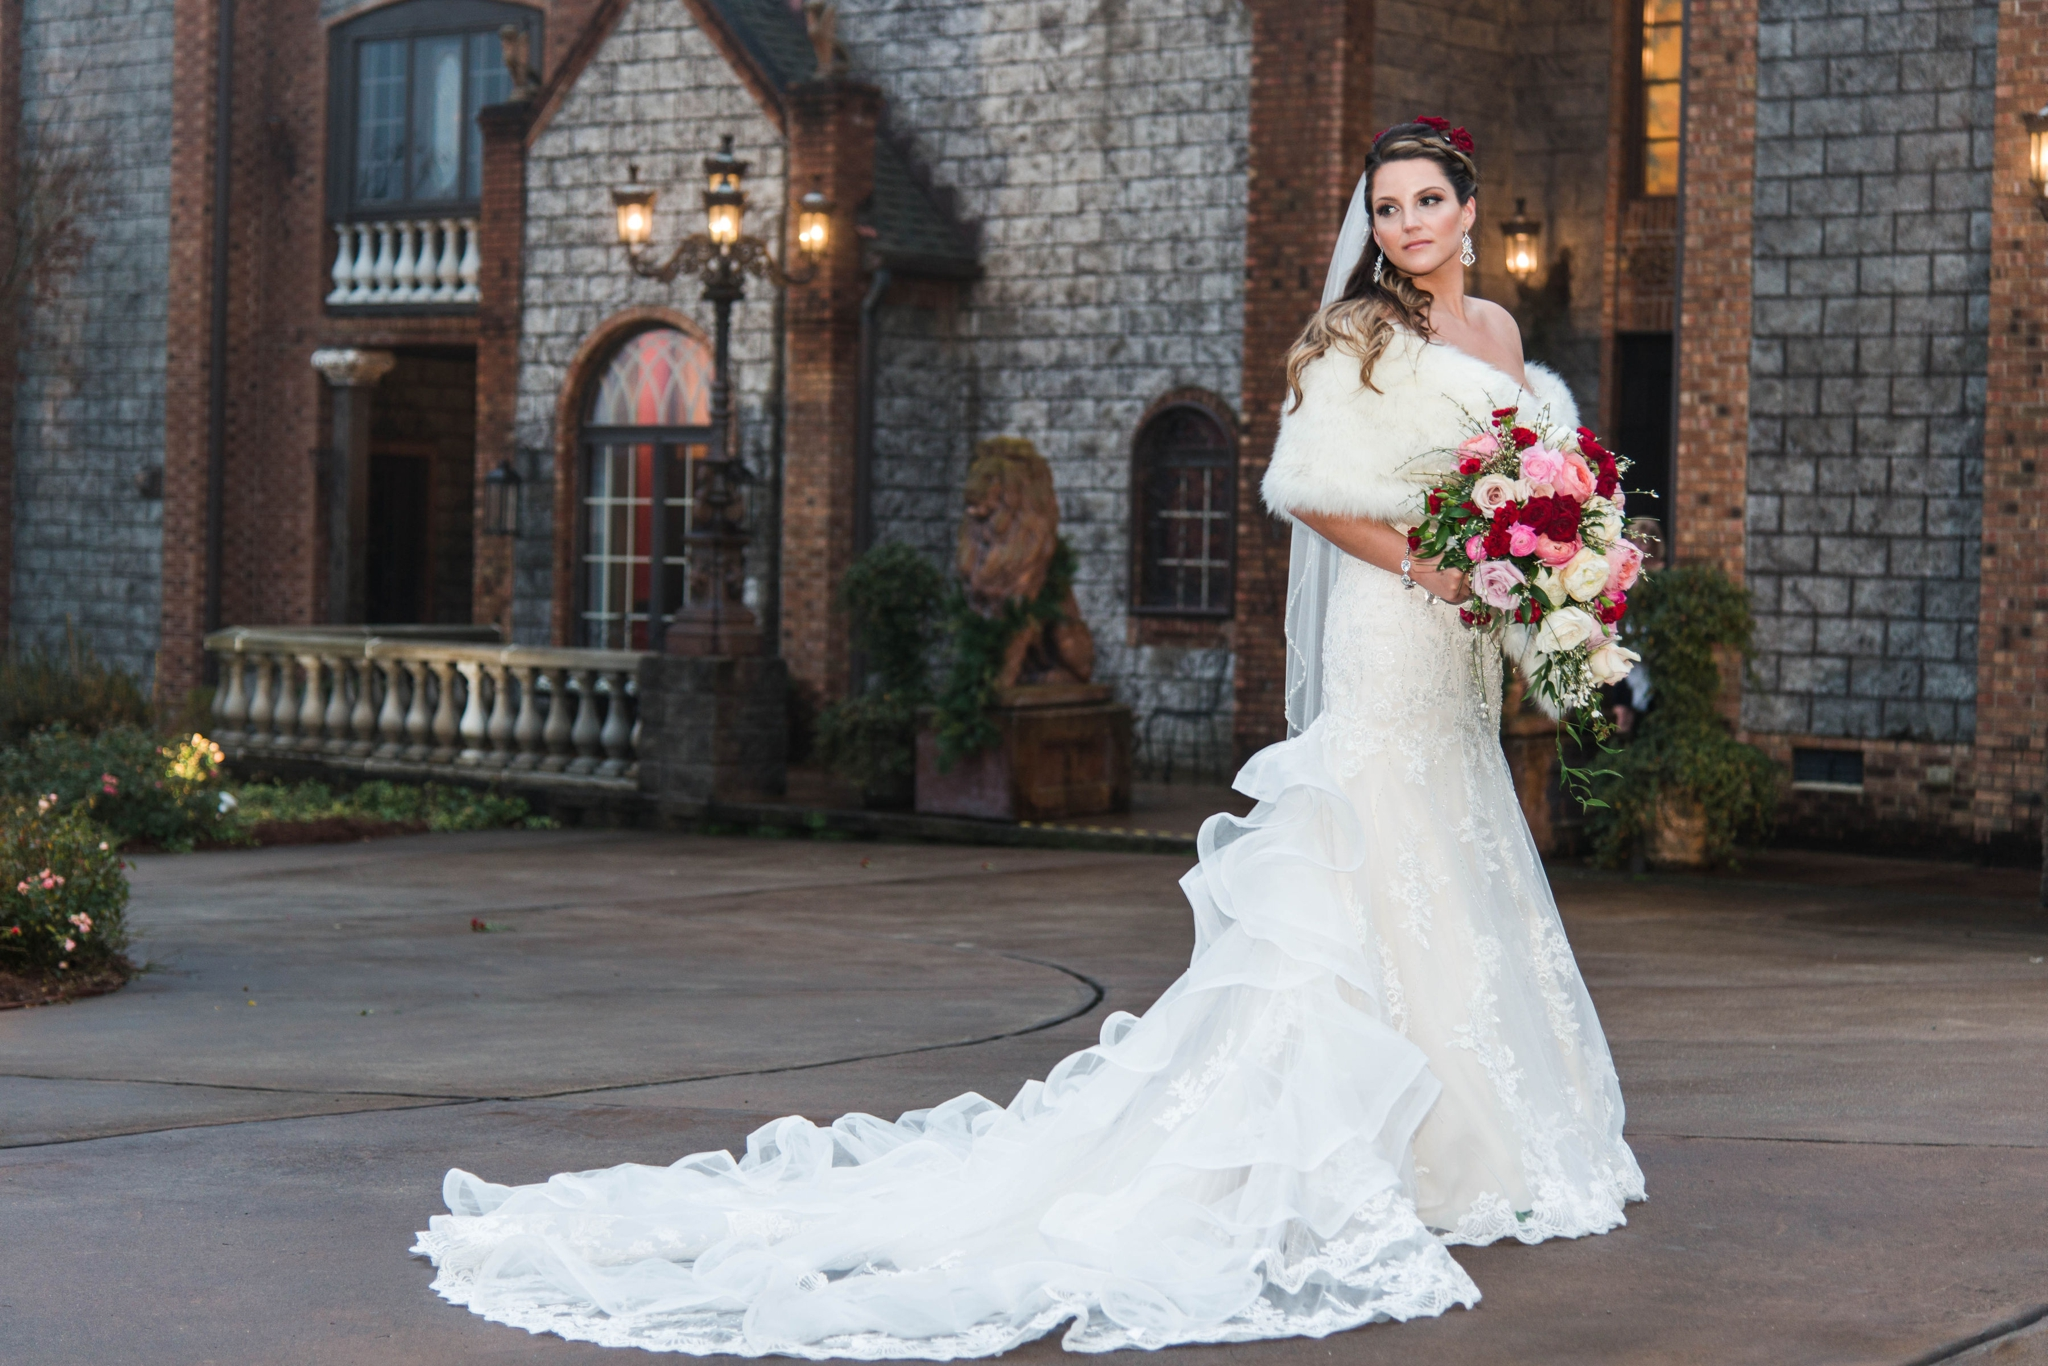 Portraits of the Bride in front of the Castle - Honolulu Oahu Hawaii Wedding Photographer